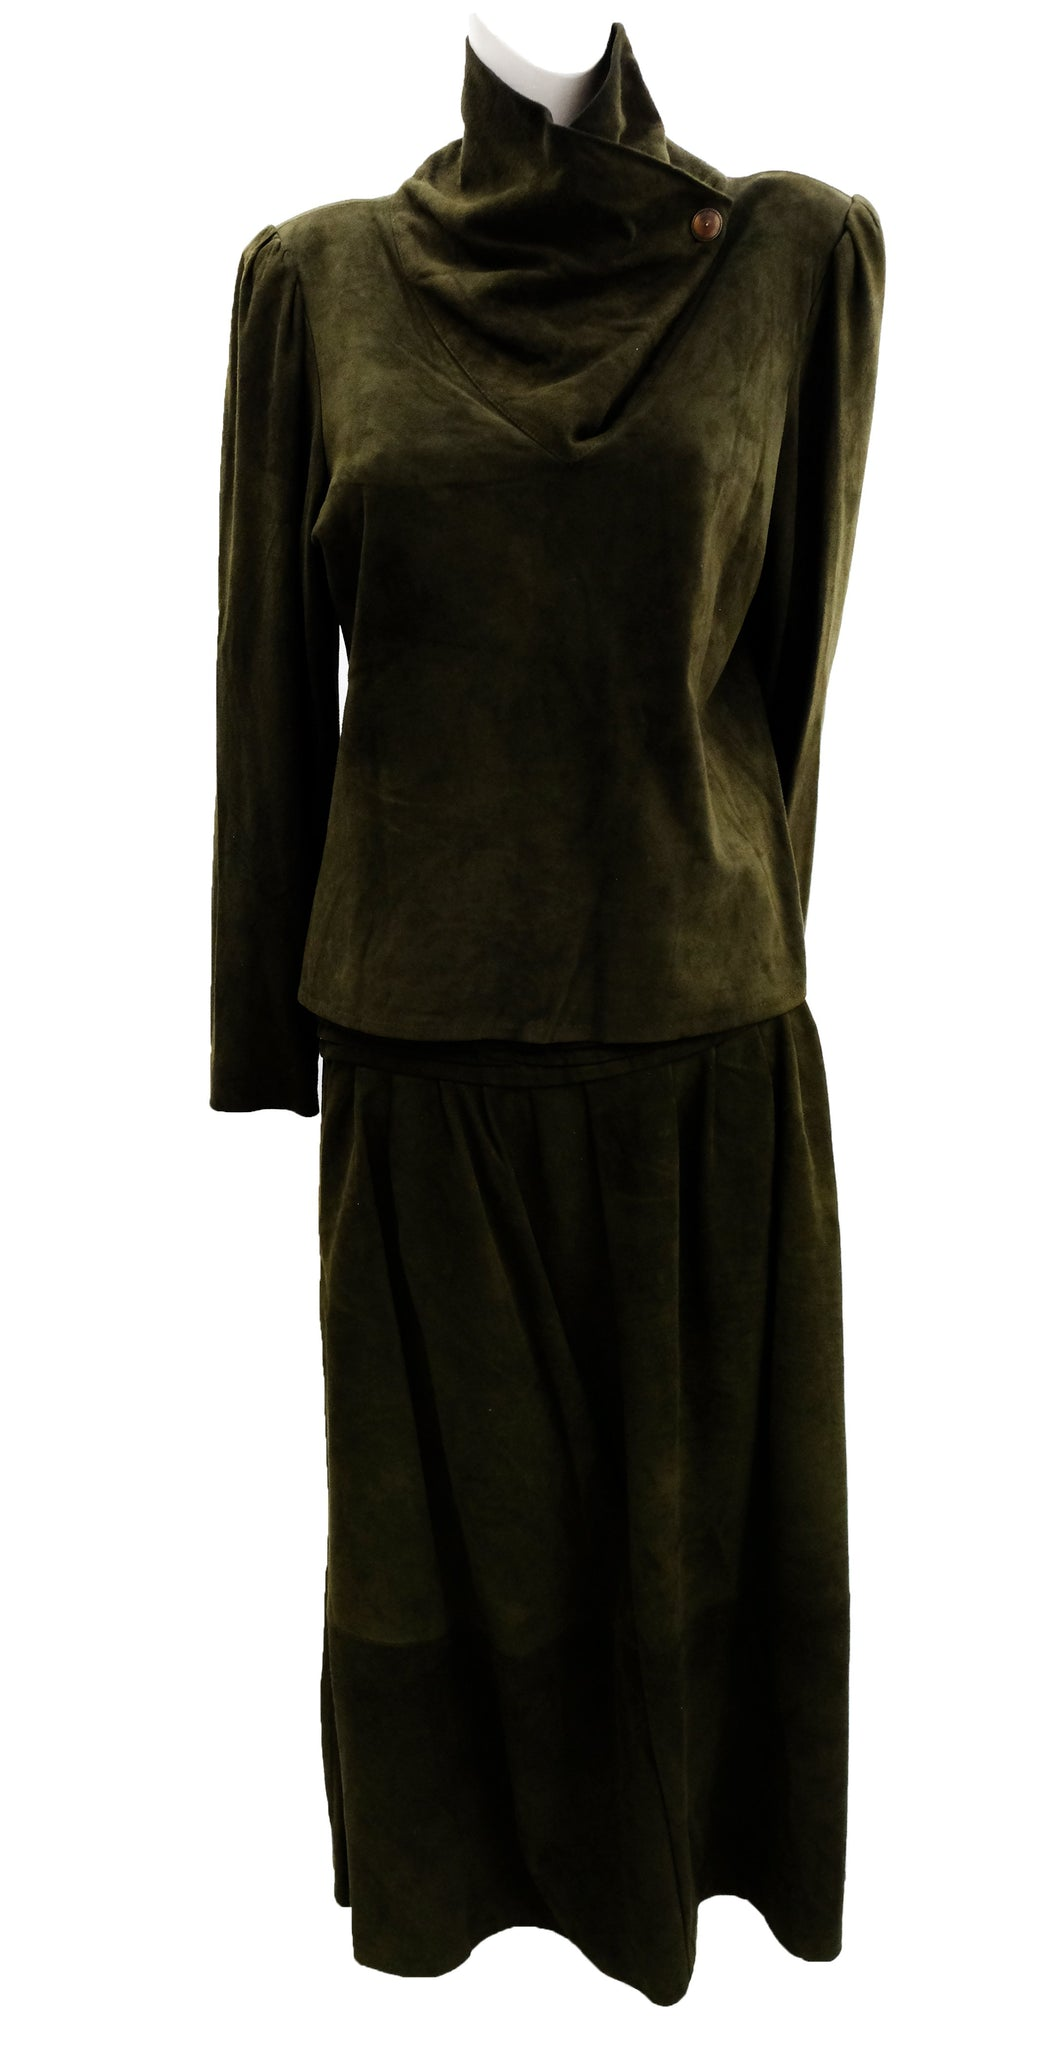 Vintage 1980s  Green Suede 2-piece Skirt Suit, UK12-14